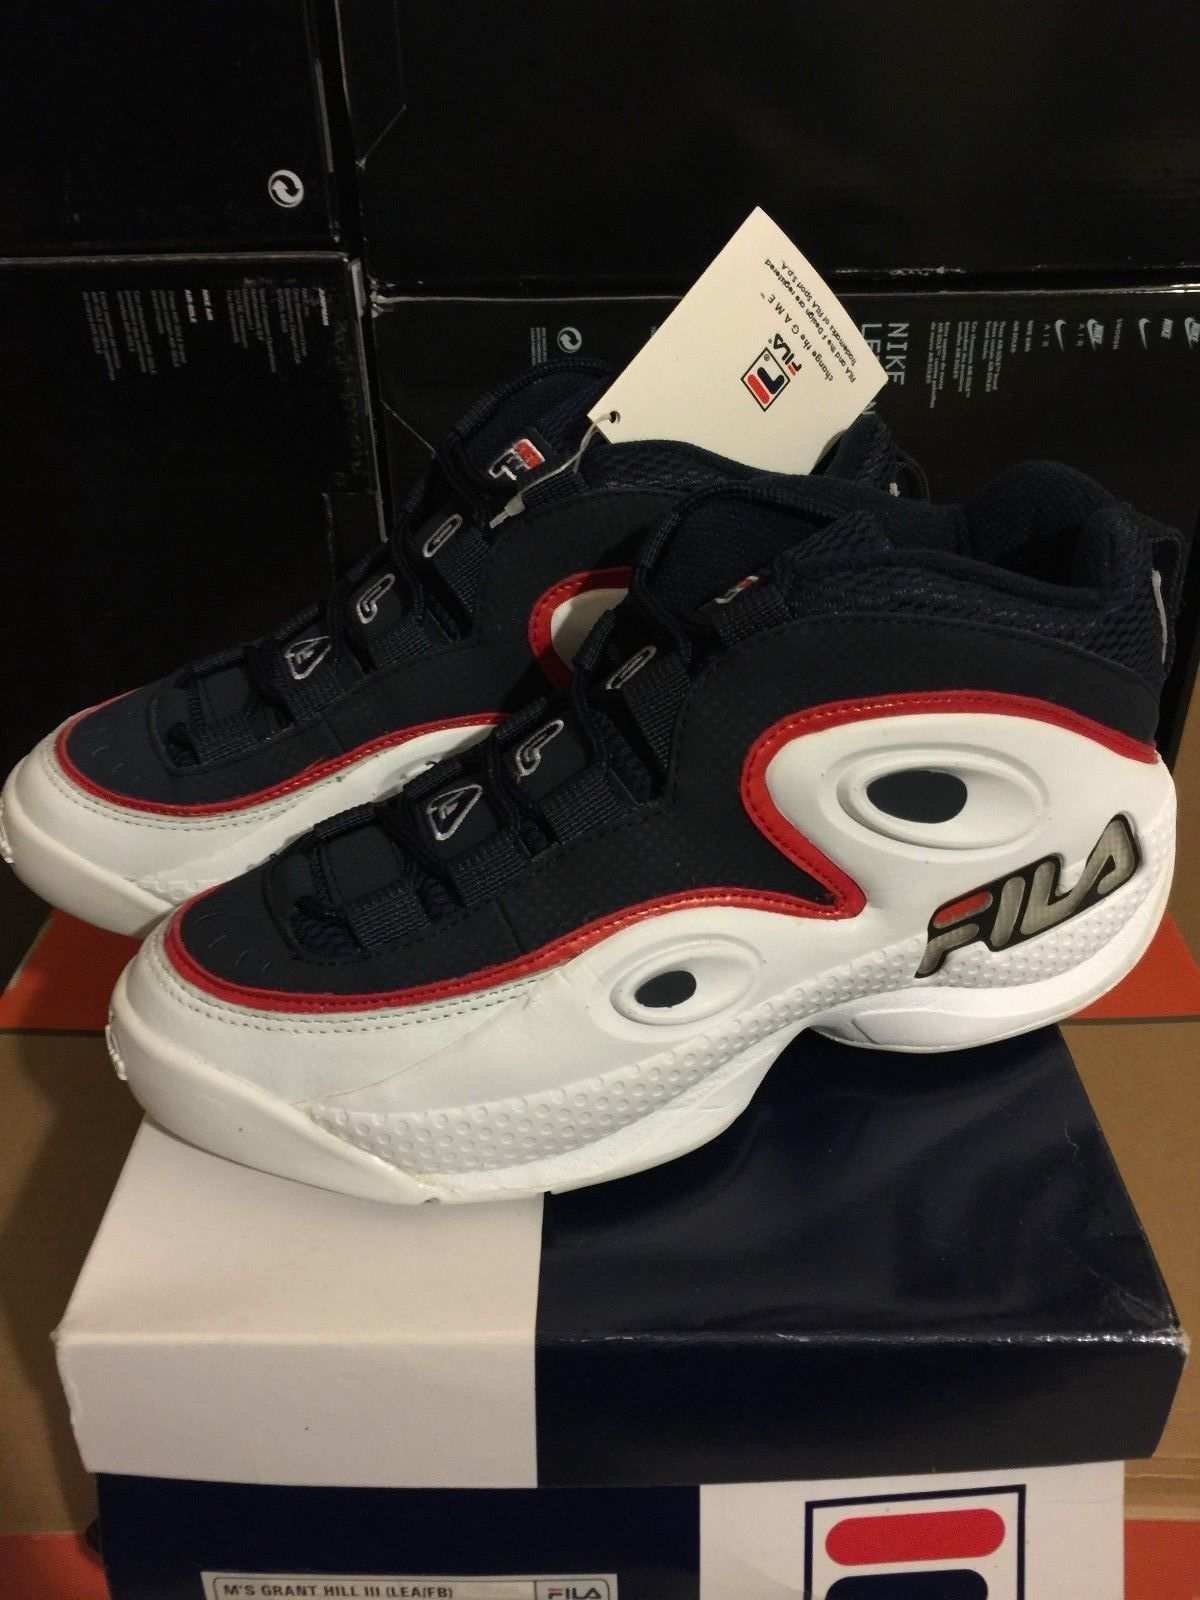 Pin by Allen Campbell on Fila Brand | Fila basketball shoes